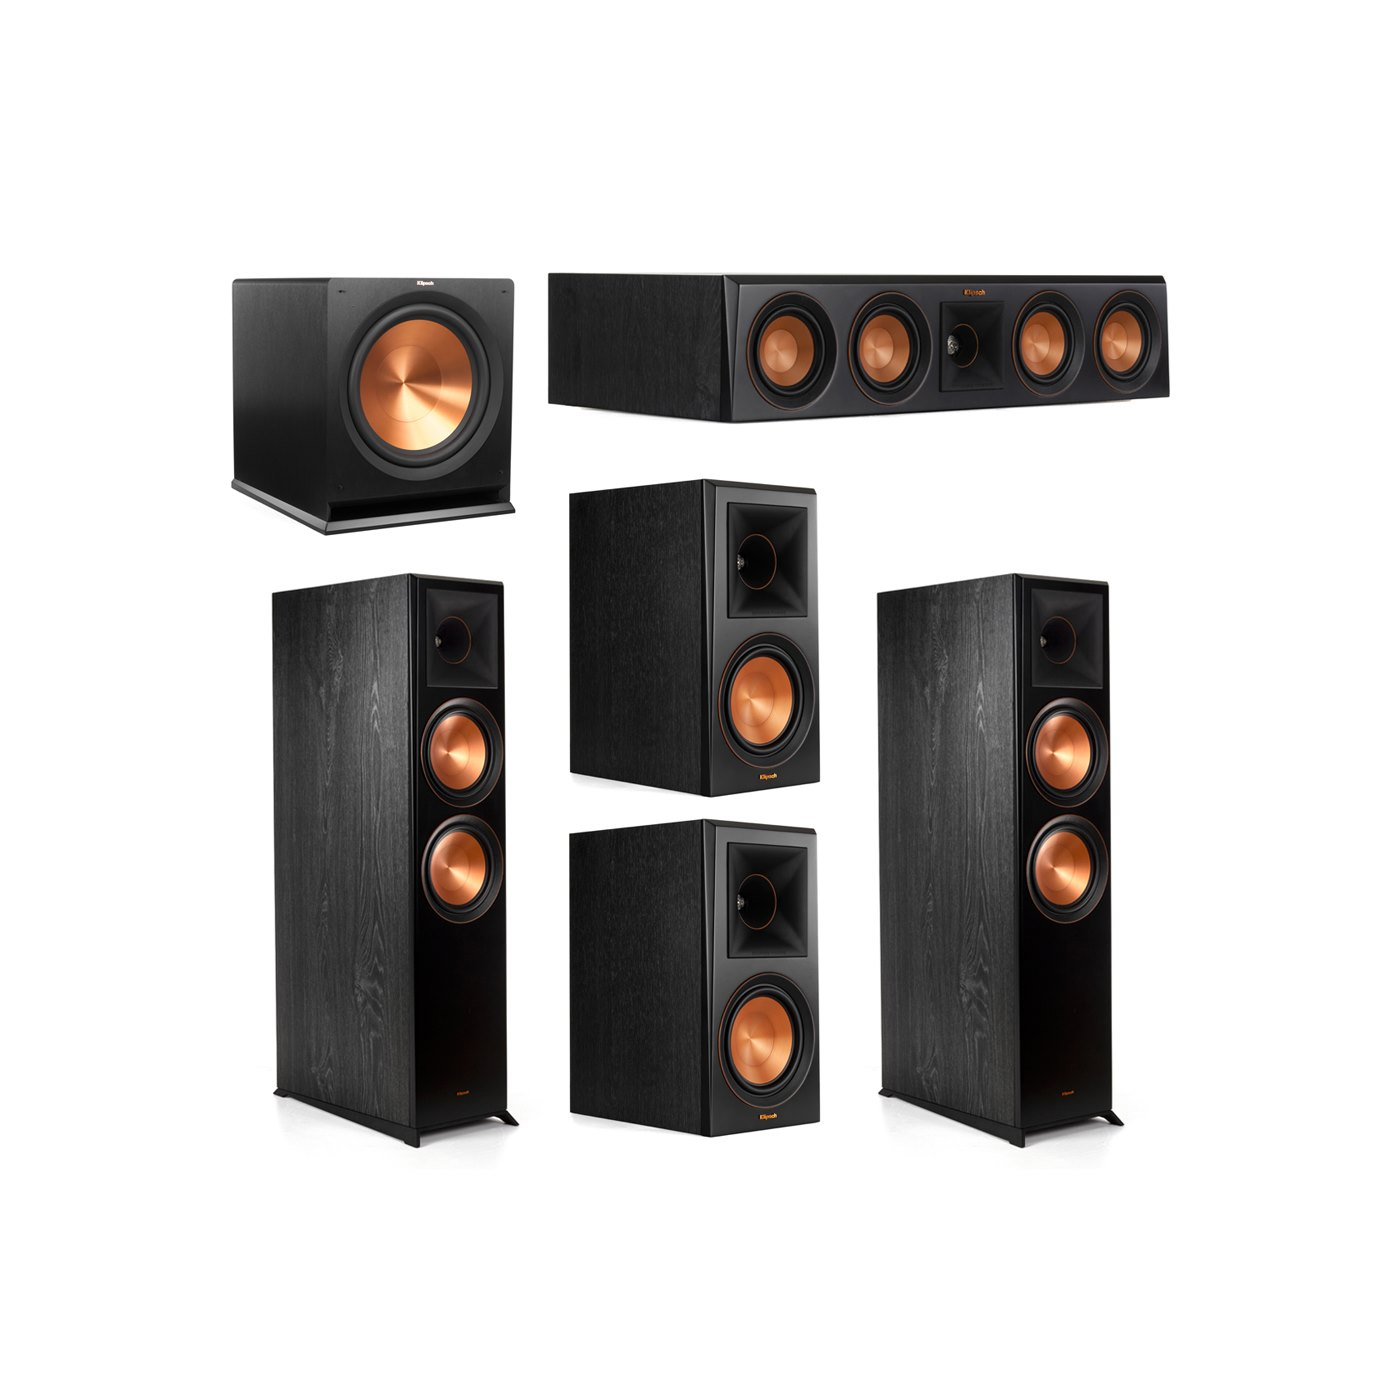 Klipsch 5.1.2 System - 2 RP-8060FA Dolby Atmos Speakers, 1 RP-404C, 2 RP-600M Speakers, 1 R-115SW